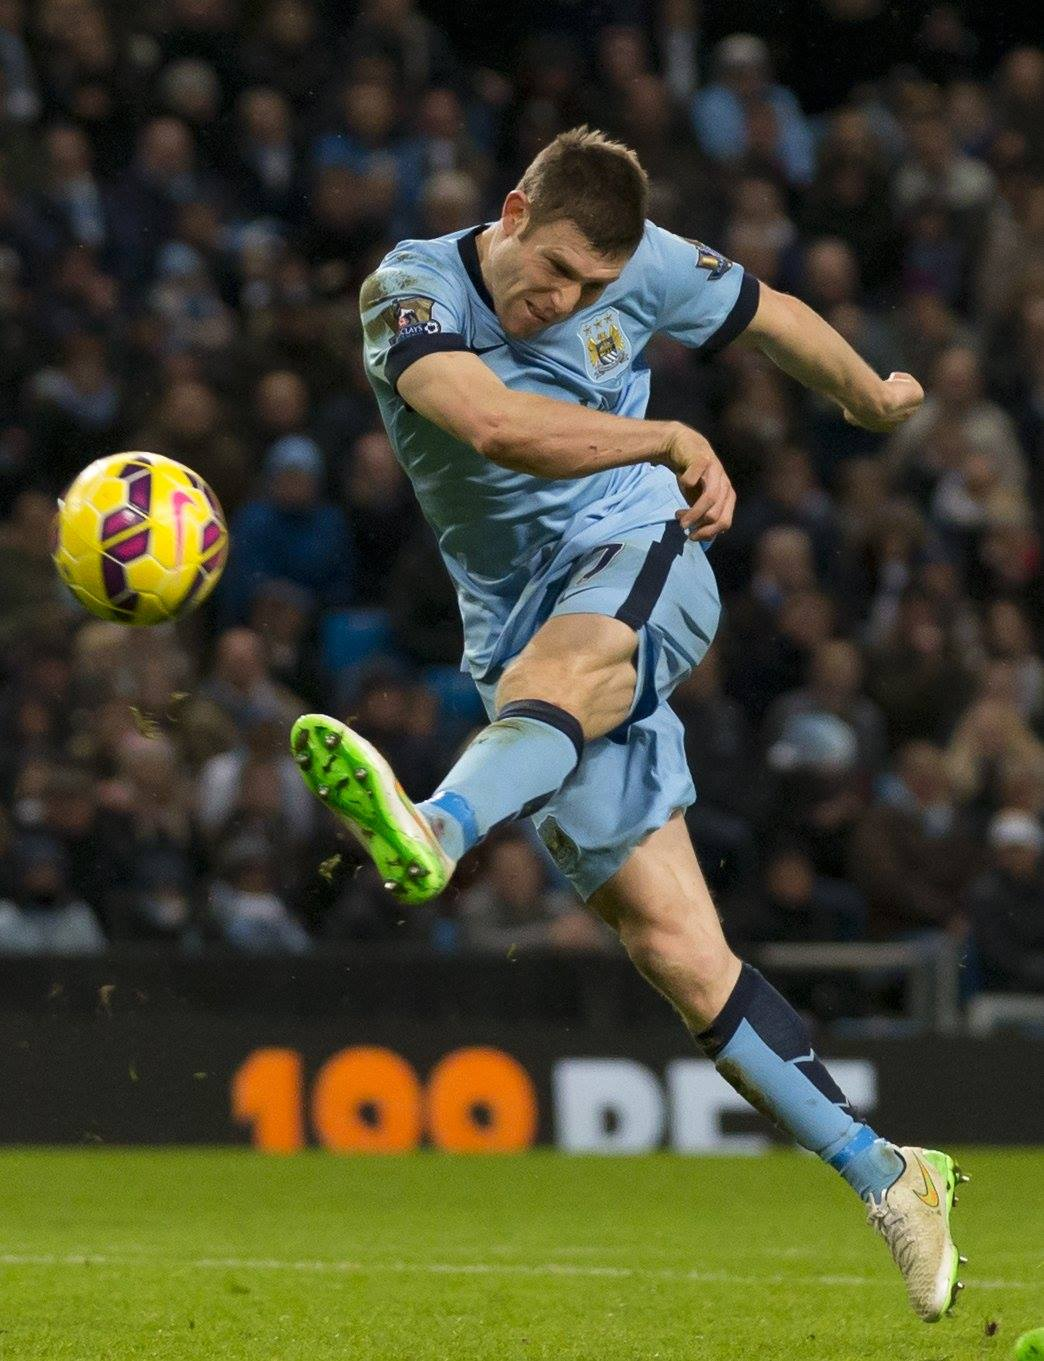 Action Man - James Milner was Man of The Match, as voted for by the Eitihad crowd. Courtesy@MCFC